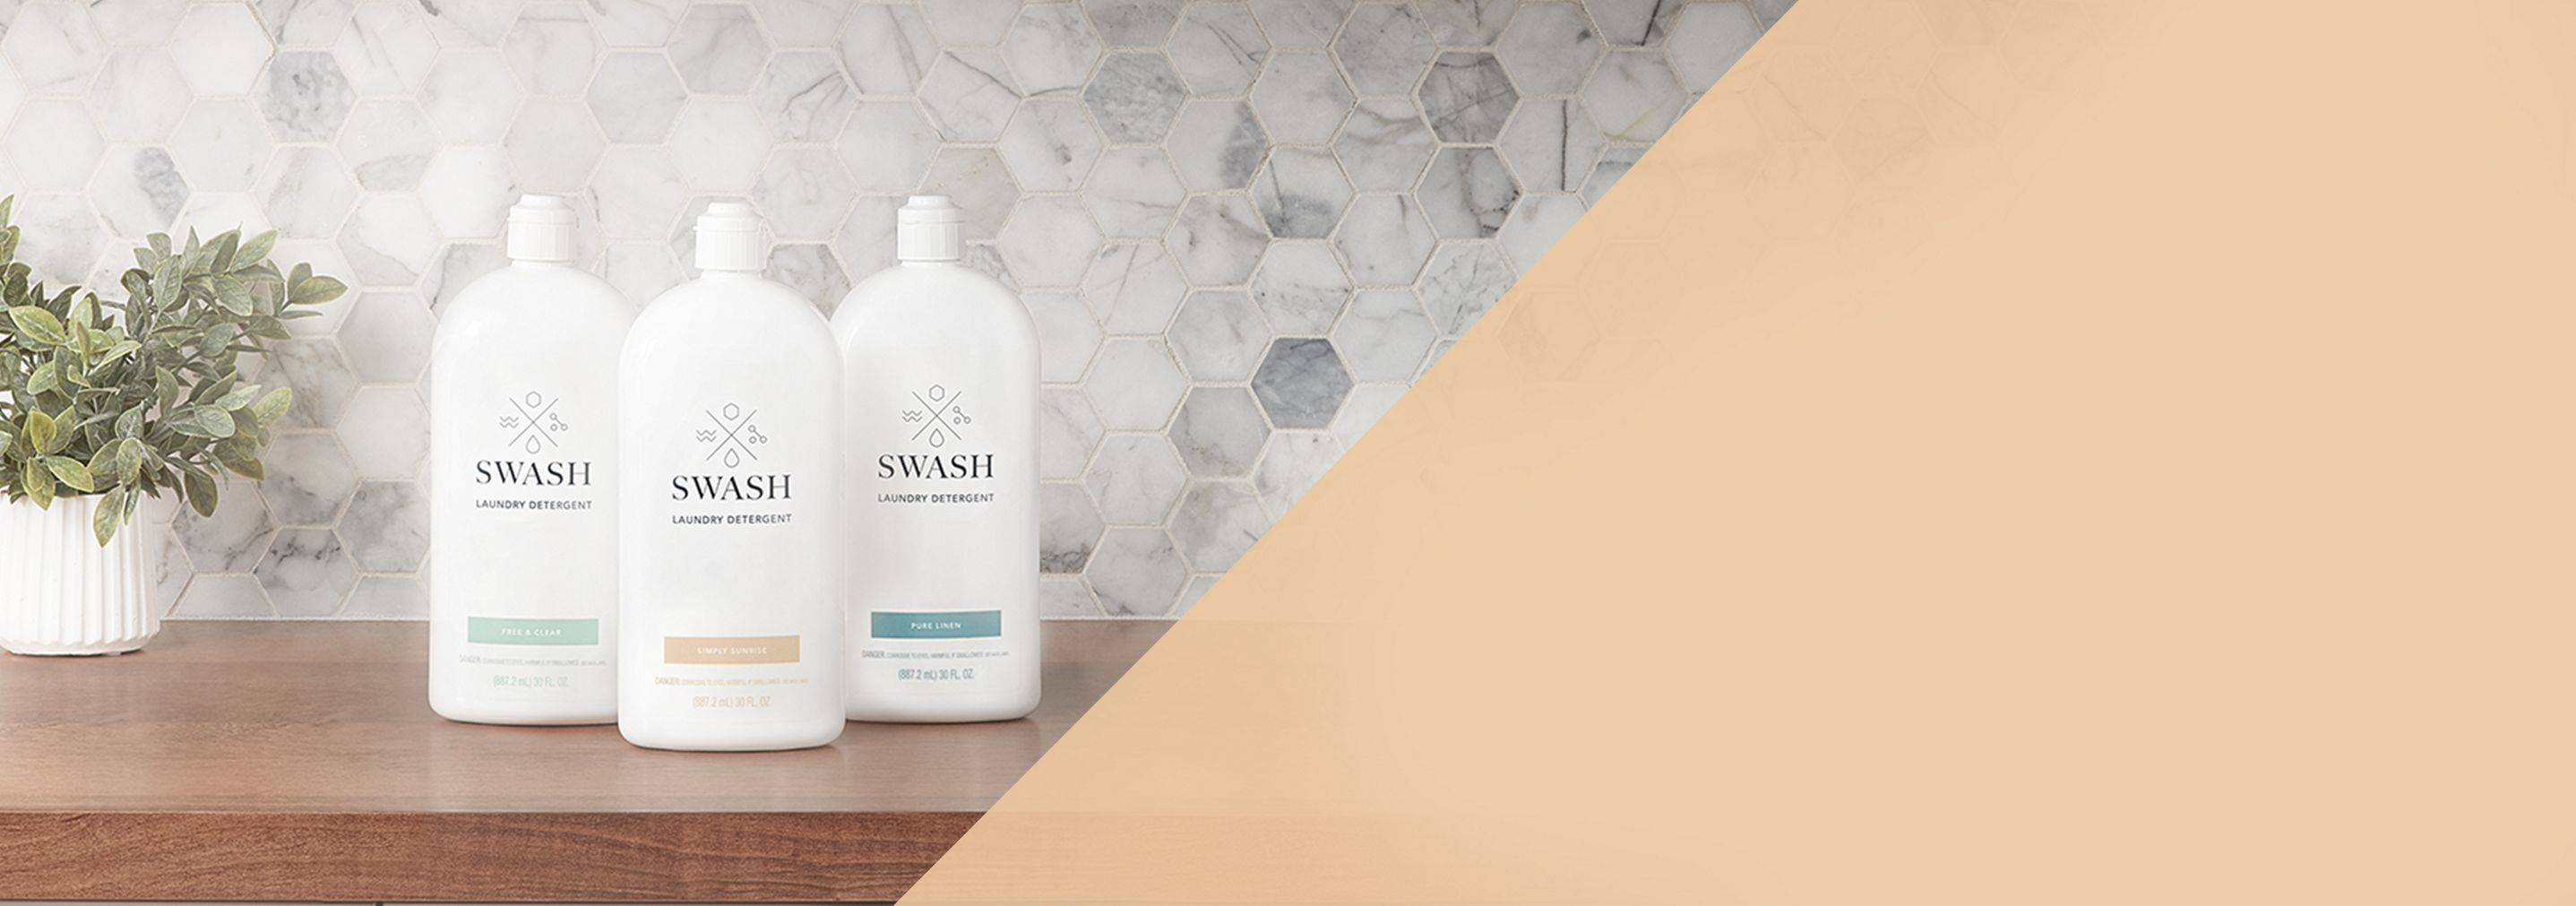 Swash Pure Linen Laundry Detergent laying flat amongst some fresh laundry